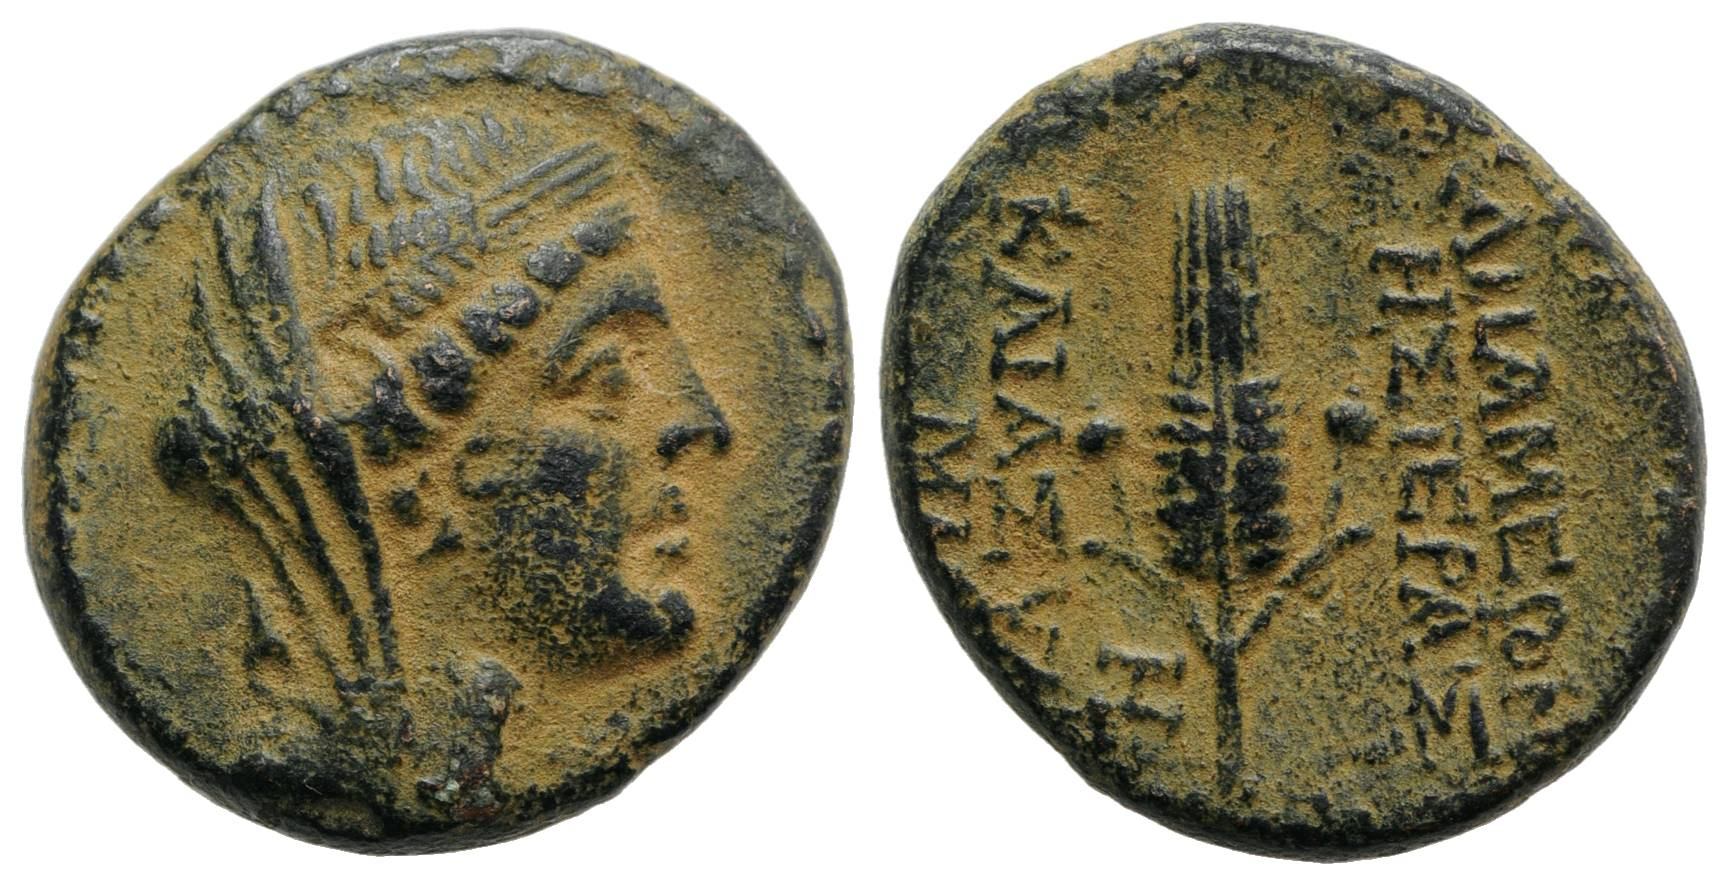 Syria, Seleukis and Pieria. Apameia. 1st century B.C. AE. Dated year 7 of the Pompeian Era (58/7 B.C). Rare.